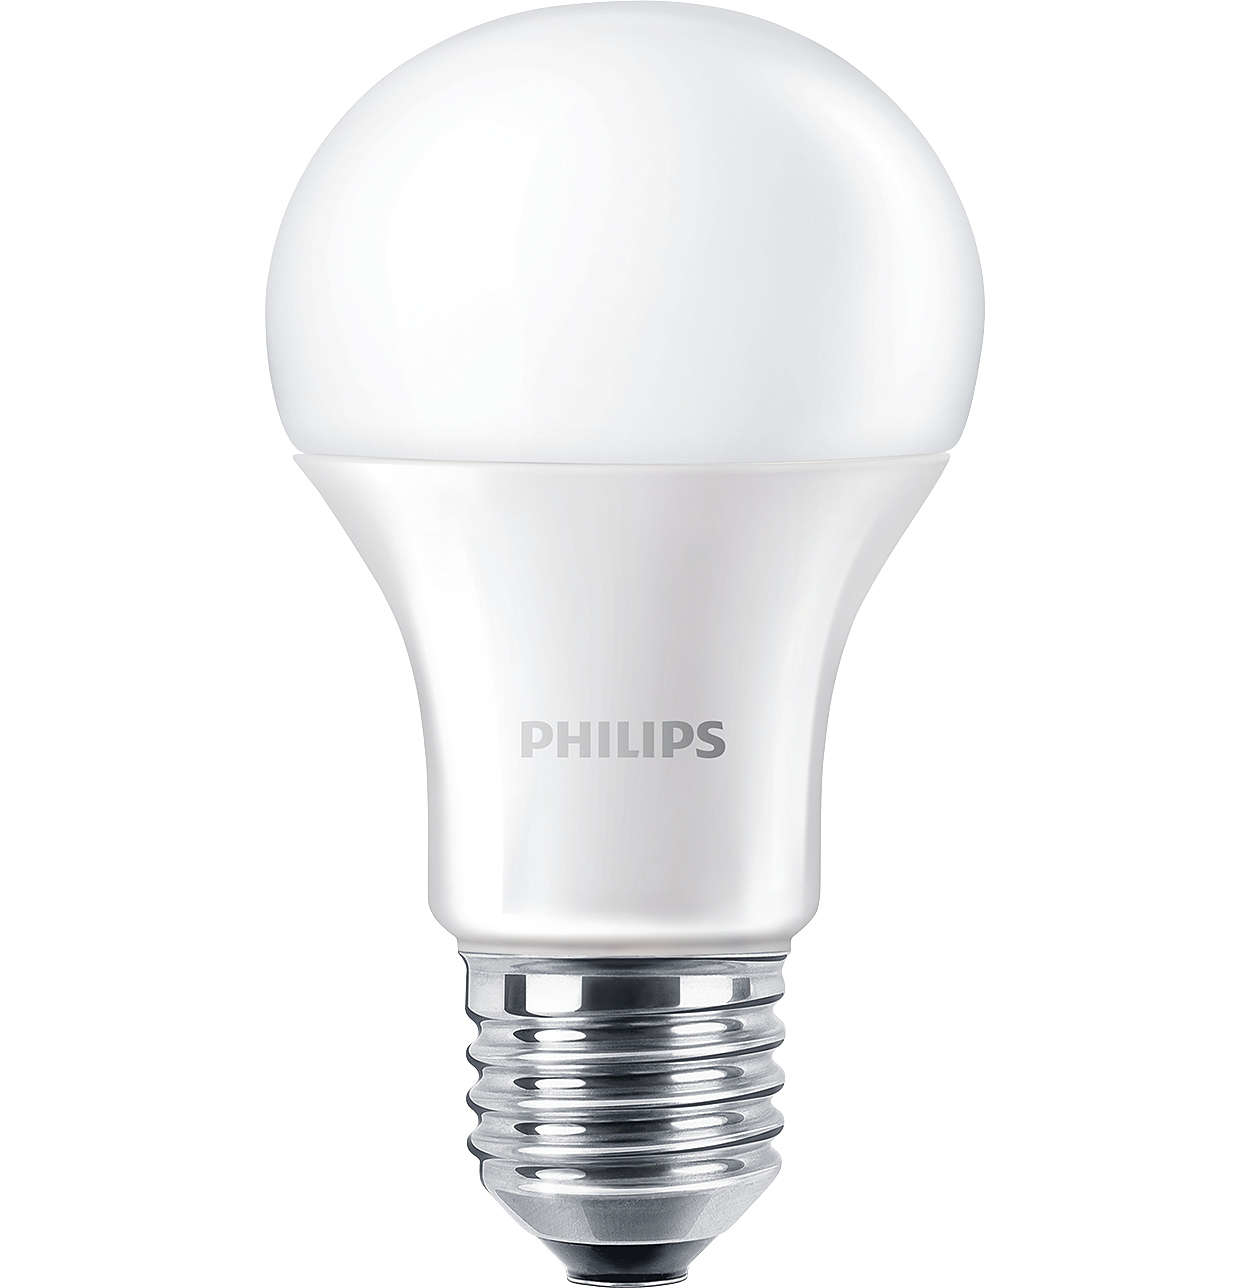 Philips - Lampadina LED - Core60840